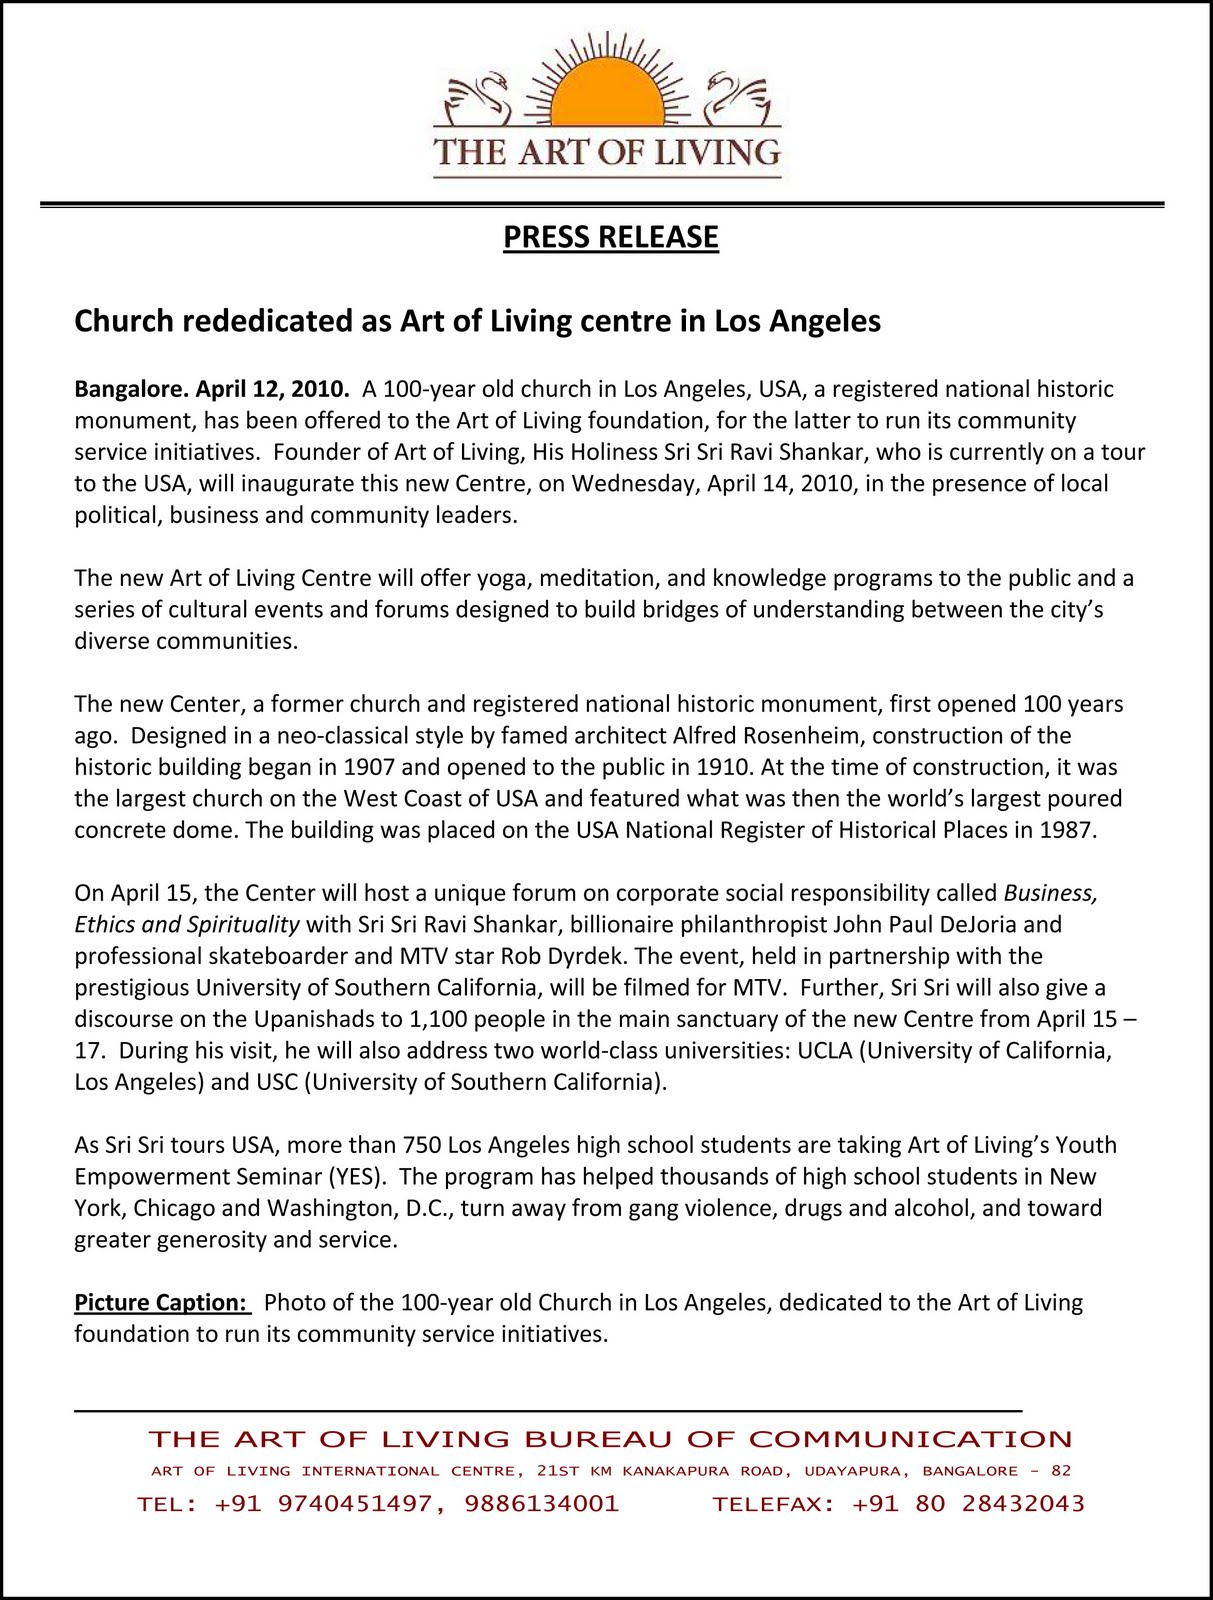 PRESS RELEASE : Church Rededicated As Art Of Living Centre In Los Angeles